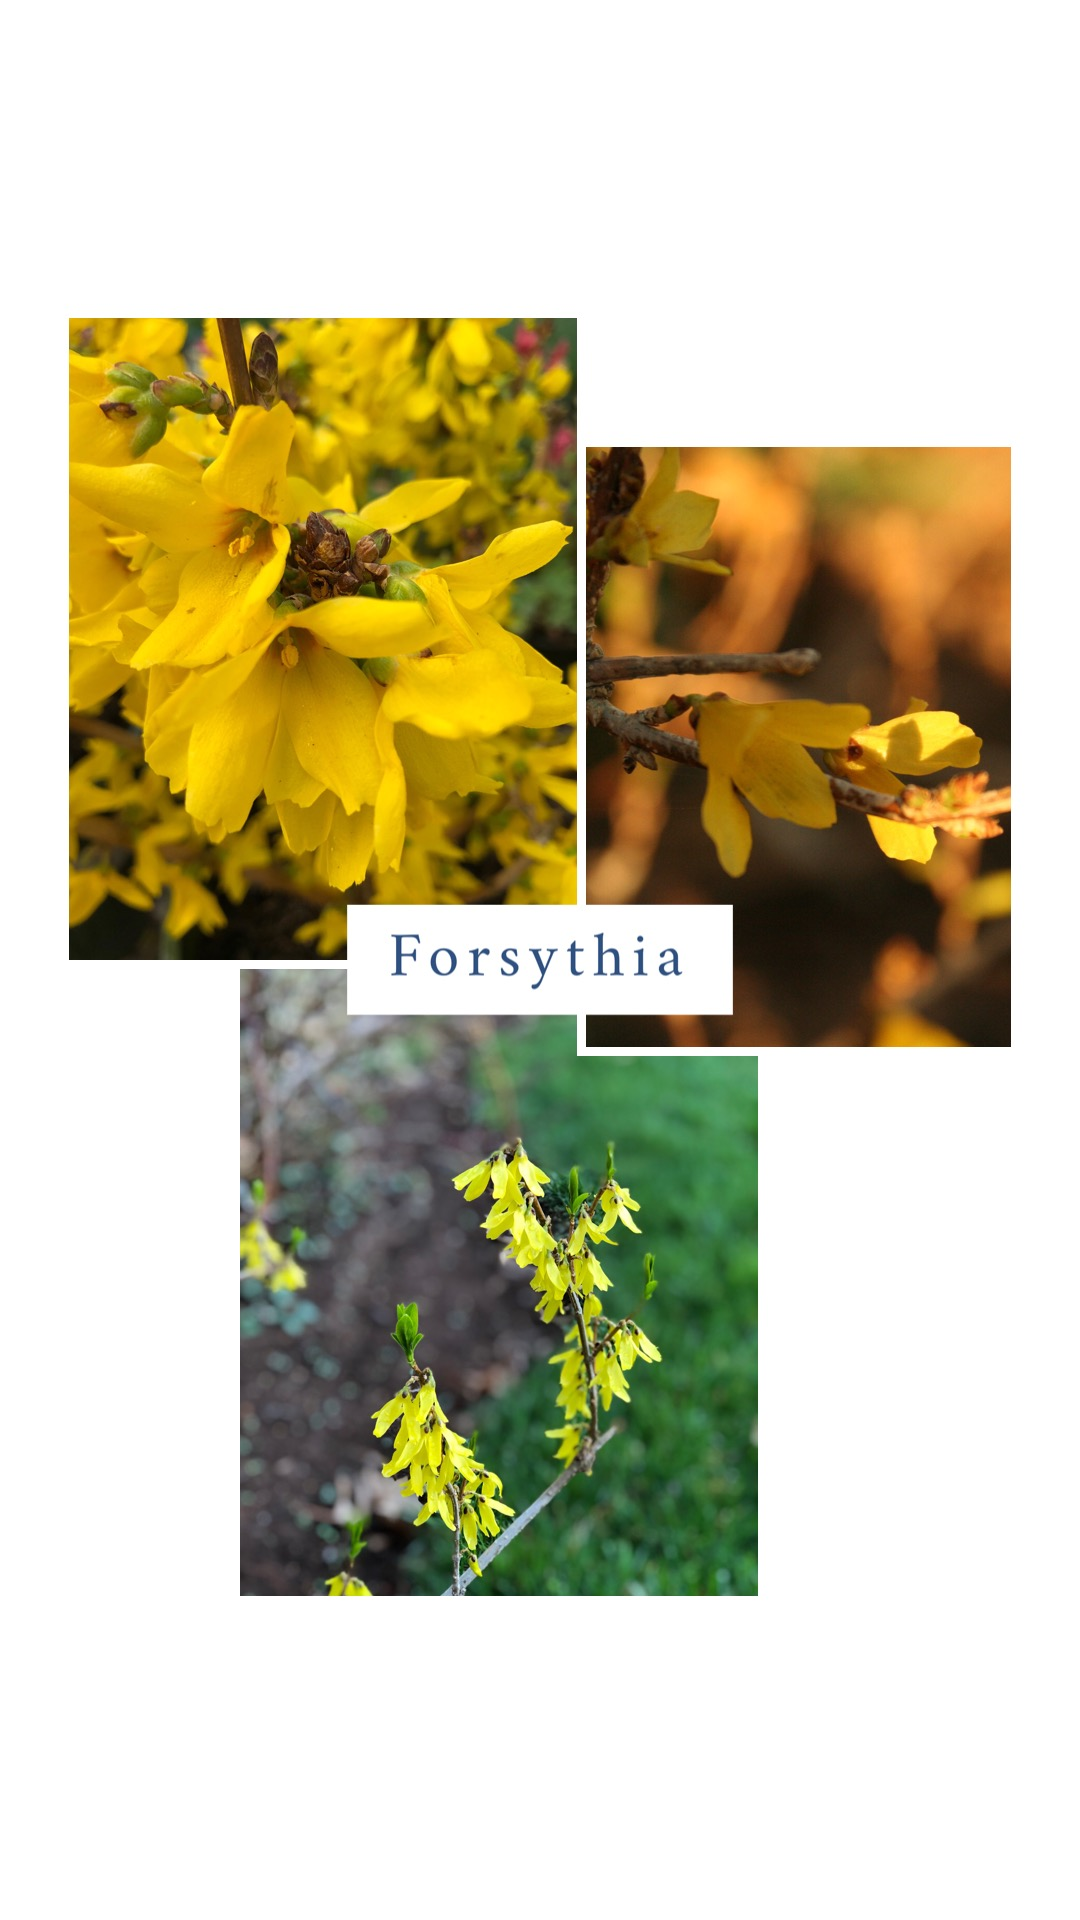 Forsythia (Forsythia x intermedia 'Lynwood').  Best grown as a specimen shrub where it can show off its naturally stunning shape. Forsythia's brilliant yellow flowers are the first to welcome spring. It performs best planted in full sun and will grow in partial shade, only with less spring blooms. It is considered a fast grower. Forsythia adapts well to most soils but prefers well drained. It rarely has an insect or disease problem. Pruning should only occur after spring blooms fade. If you prune later in the year you will reduce blooms the following spring. The best way to prune this shrub is to remove older wood all the way to the base of the shrub. Traditional forsythia will grow to 6-8' with an 8' spread and are well suited for large lawns. If you have a smaller yard, look for one of the newer varieties, such as Gold Tide (Forsythia 'Courtasol'), a dwarf variety that only reaches 2' high and spreads to 4'.